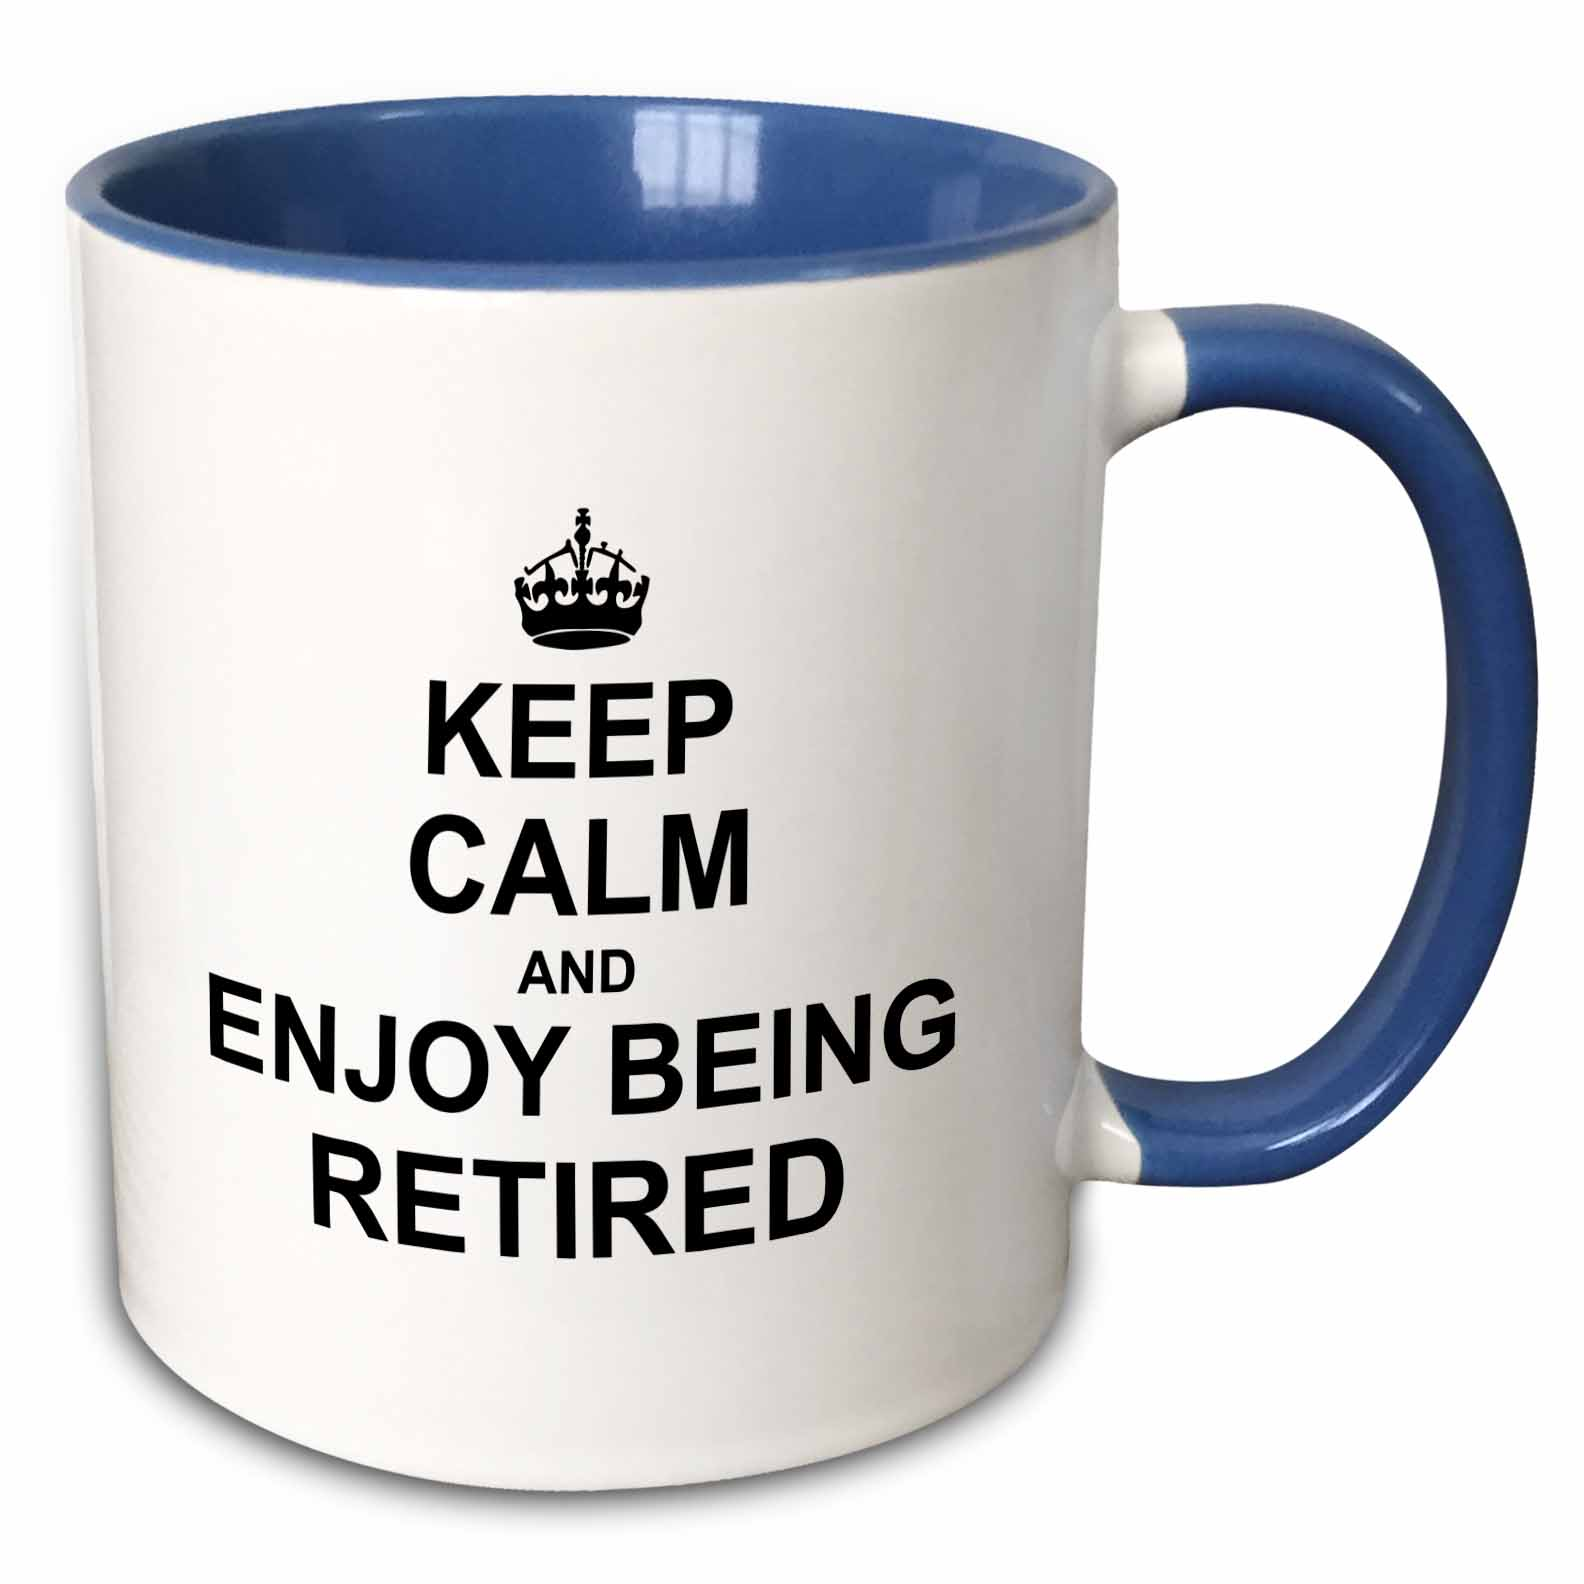 3dRose Keep Calm and Enjoy being Retired. fun carry on themed Retirement gift - Two Tone Blue Mug, 11-ounce